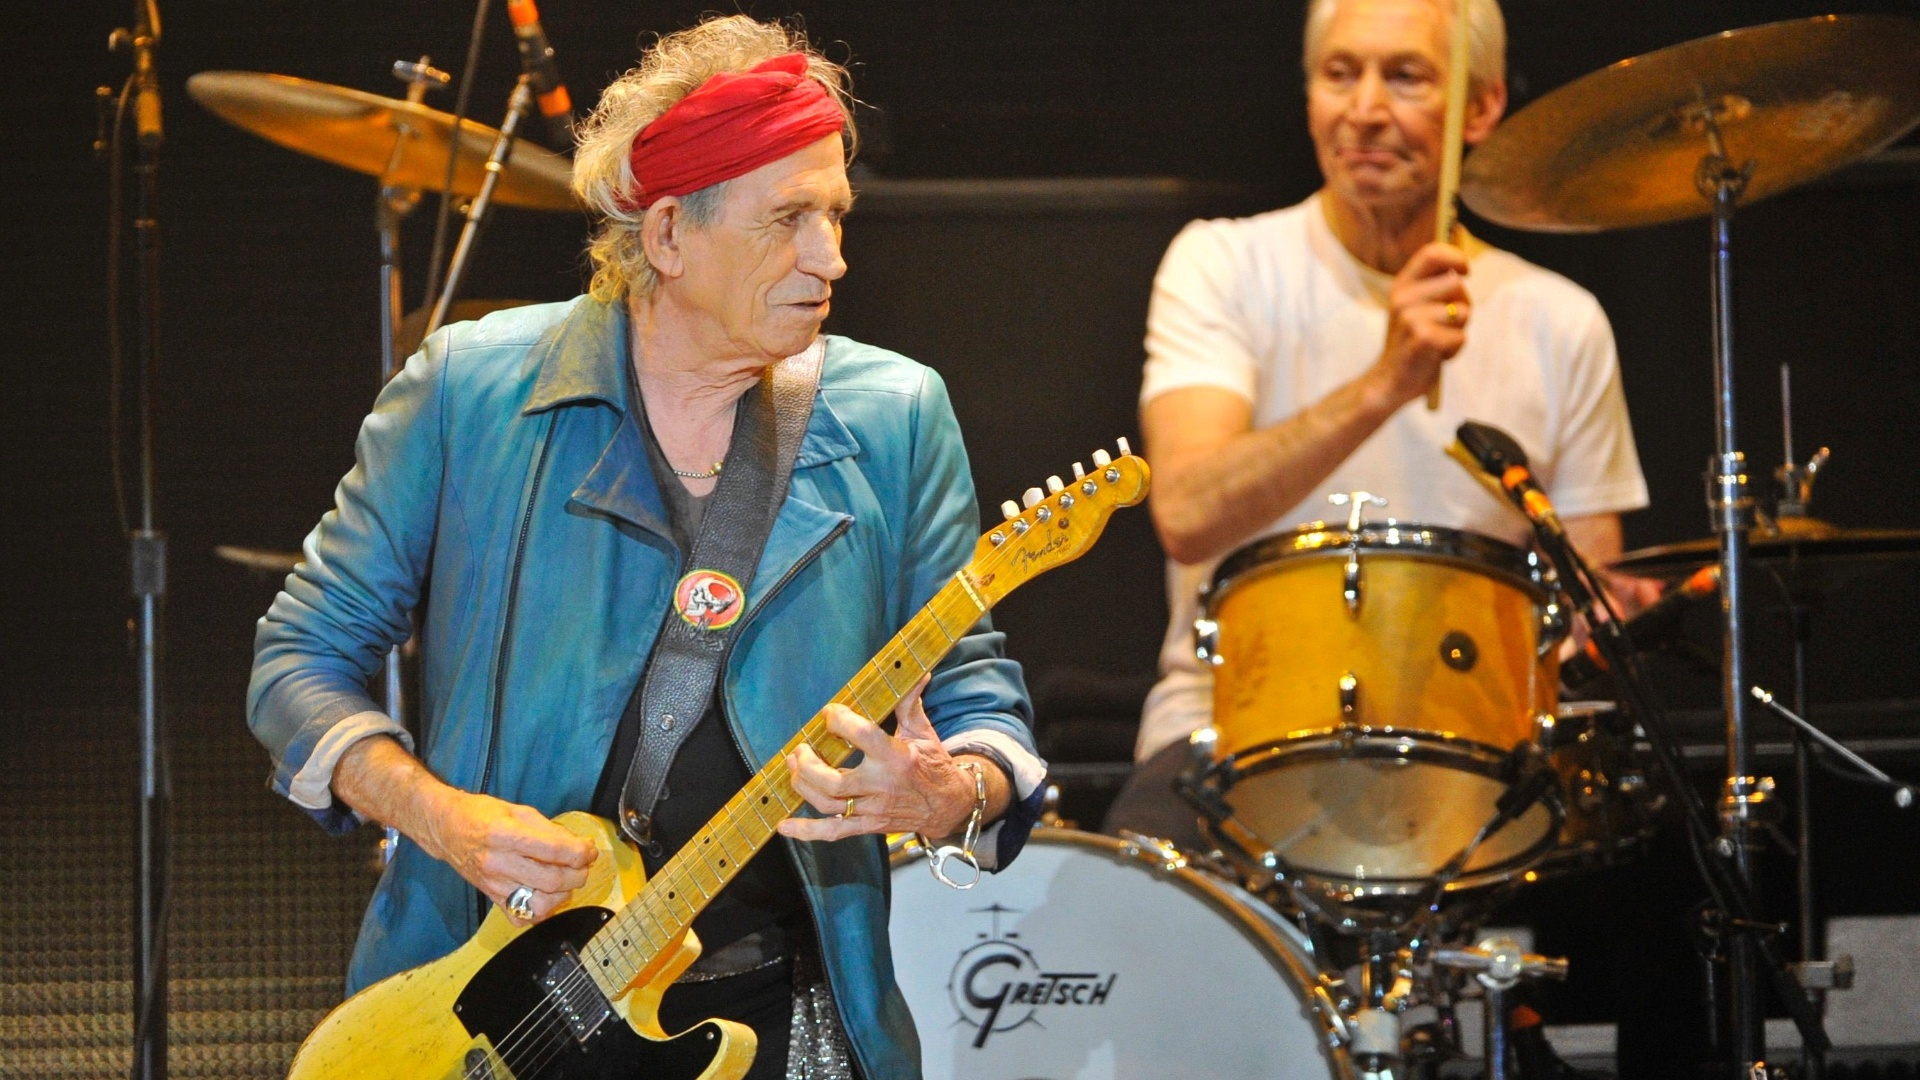 Keith Richards e Charlie Watts tocam no primeiro show dos Stones depois de um hiato de 5 anos (25/11/12)